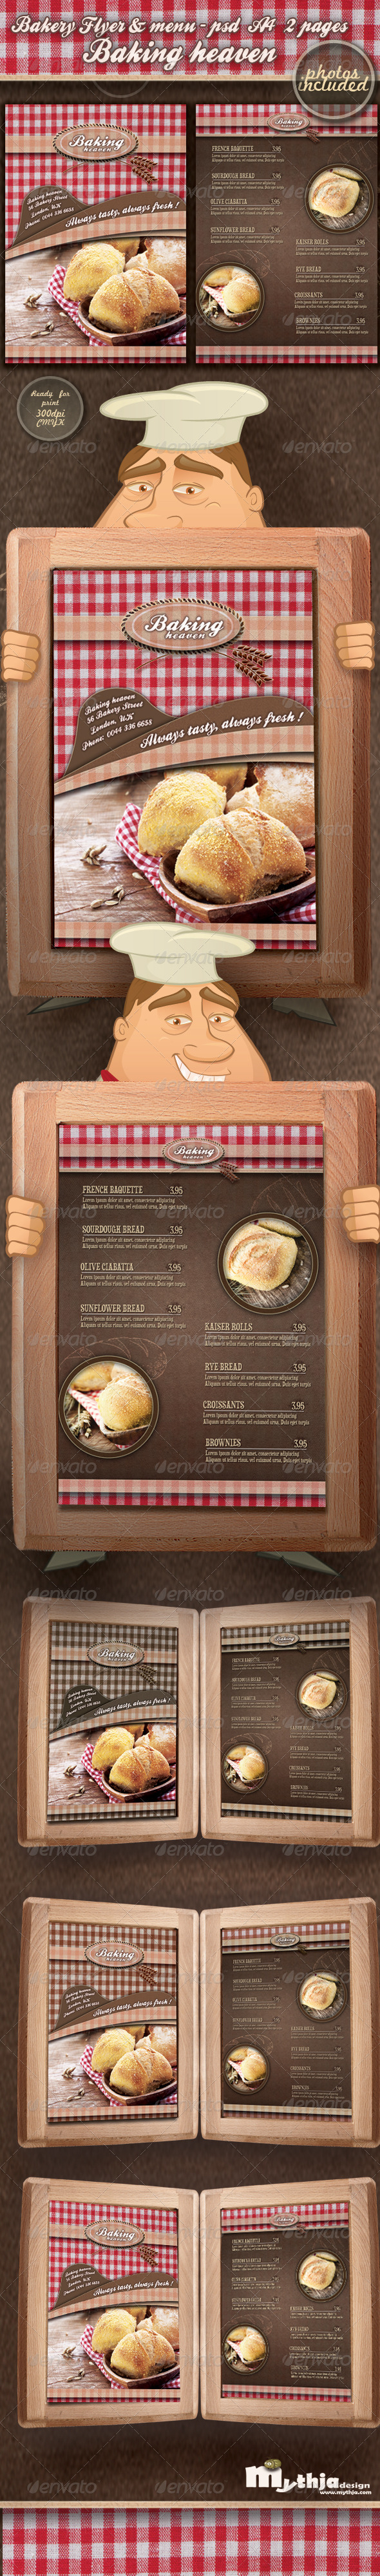 Bakery Flyer & Menu Template (Photos Included)